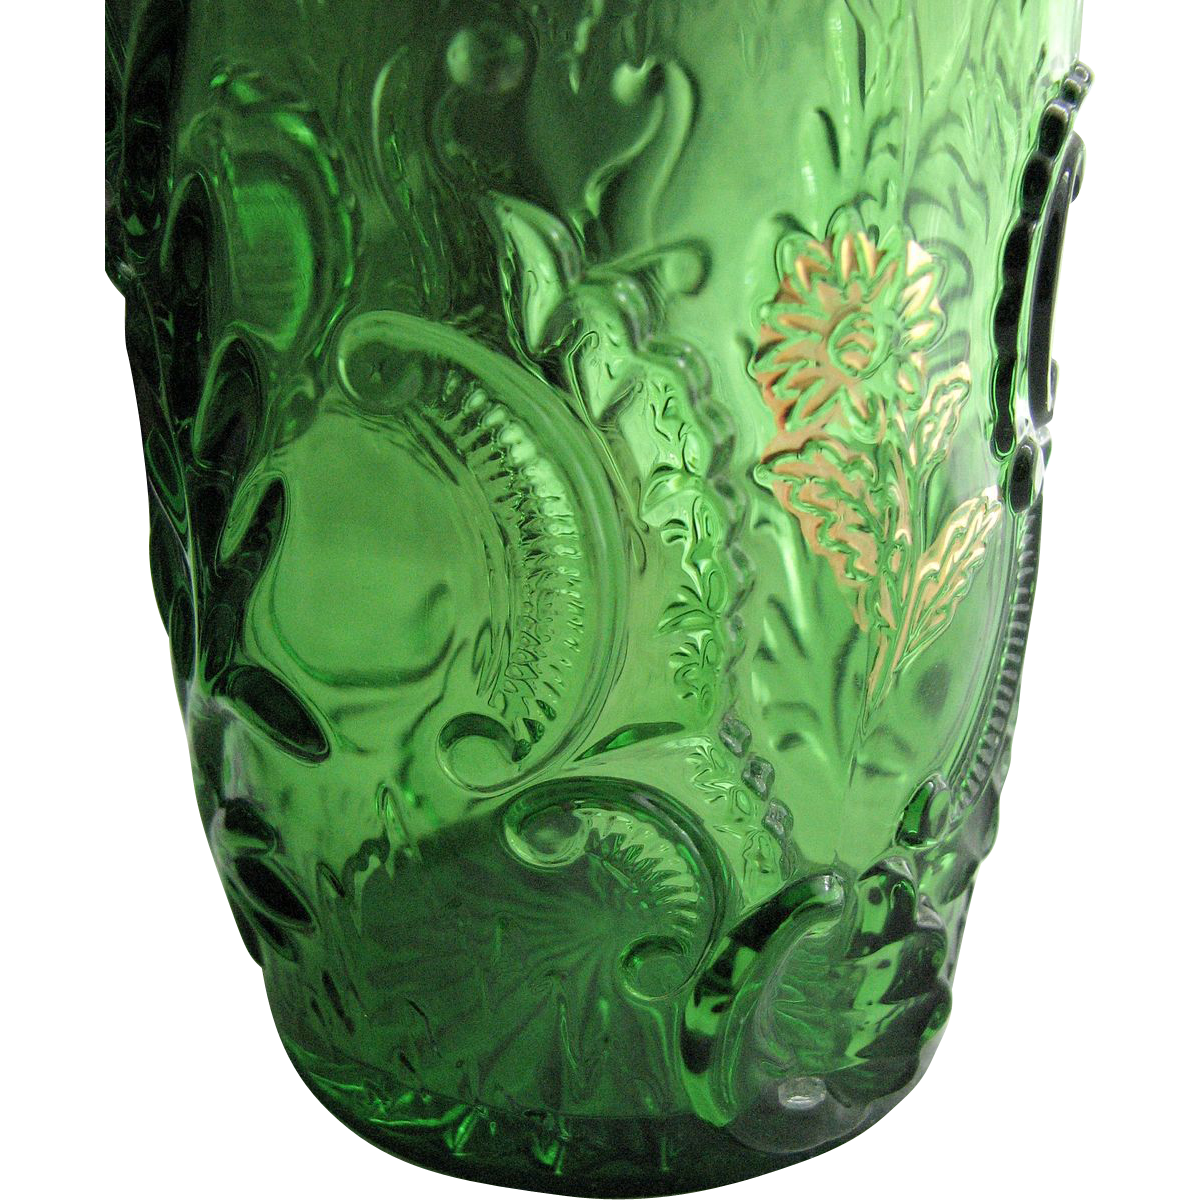 Northwood Glass, Eapg Emerald green 'Louis XV' tumbler